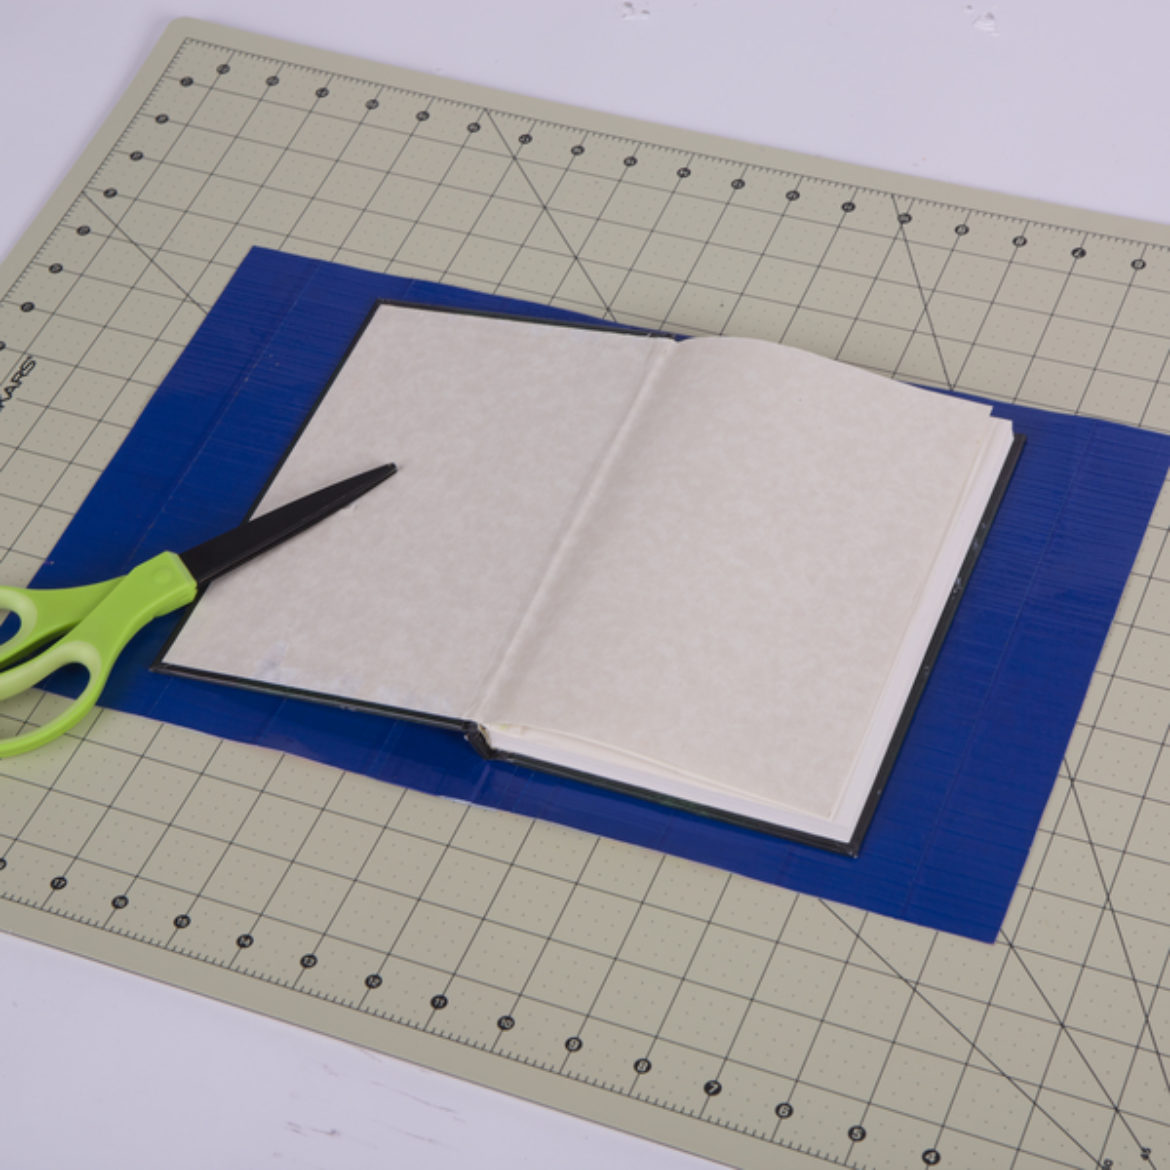 Book of choice placed on the adjoined sheets from the previous step, then cut out the sheet to be the same size as the open book